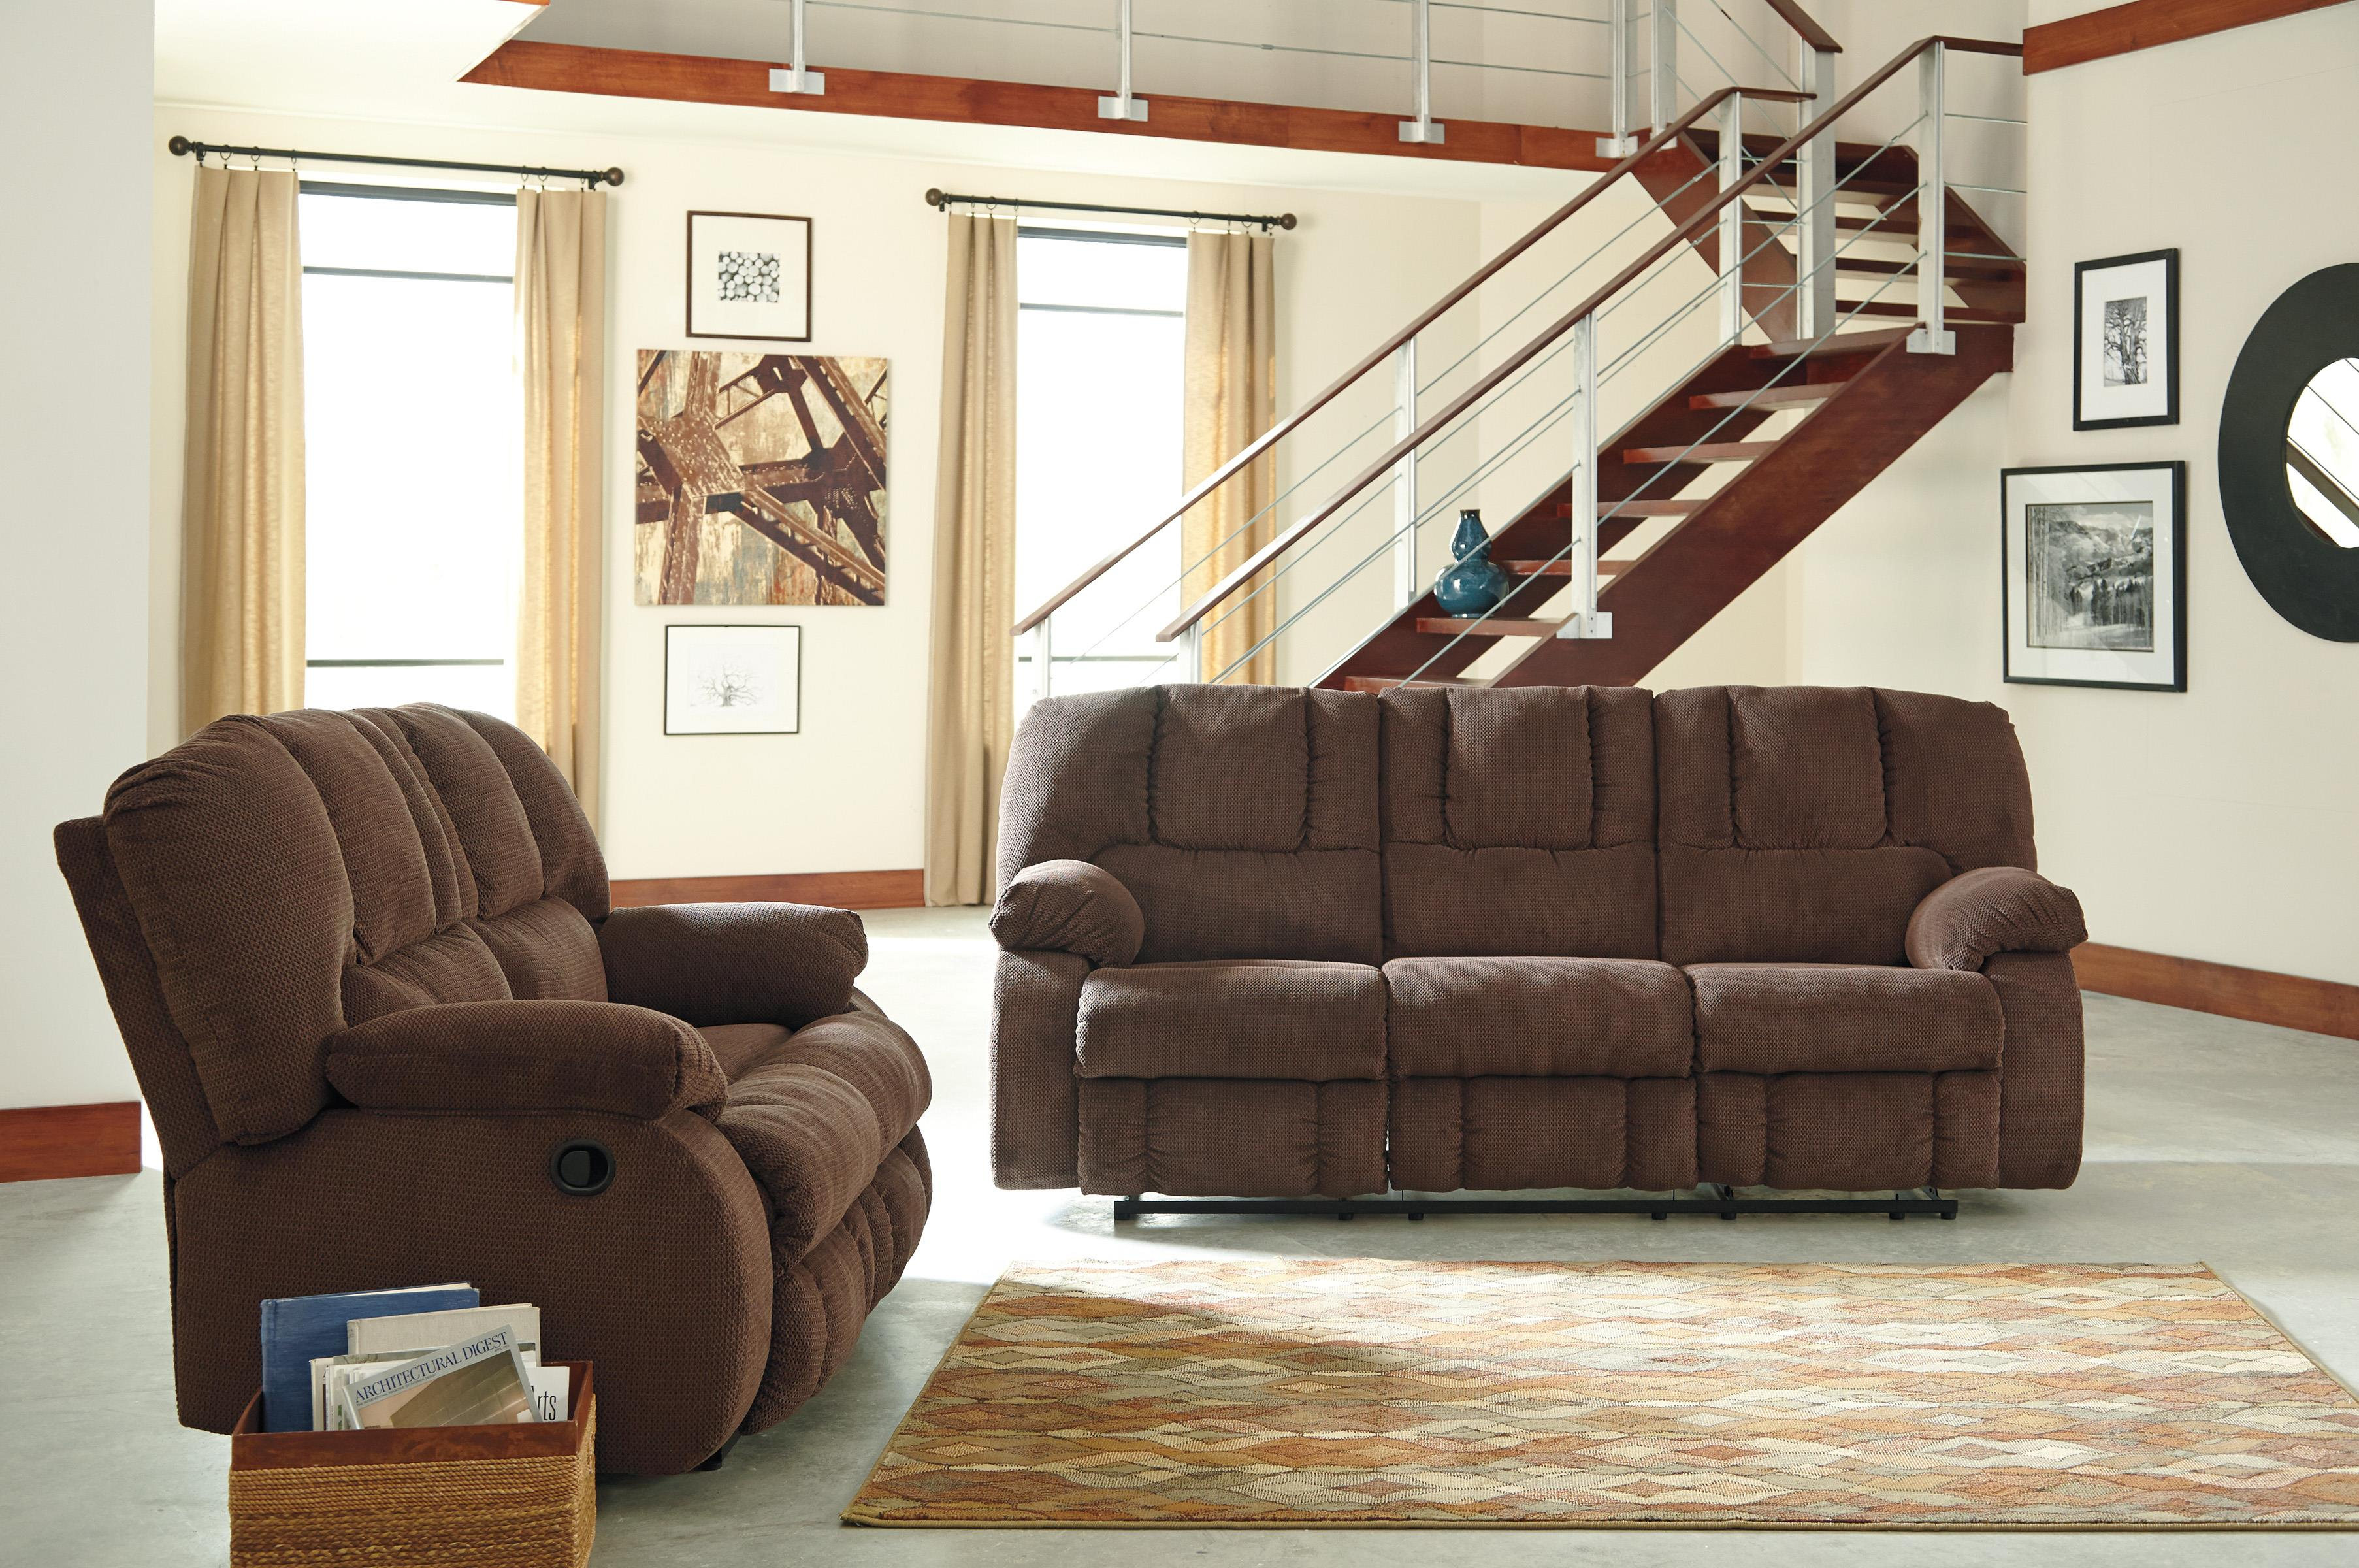 Benchcraft Roan Reclining Living Room Group - Item Number: 38604 Living Room Group 1